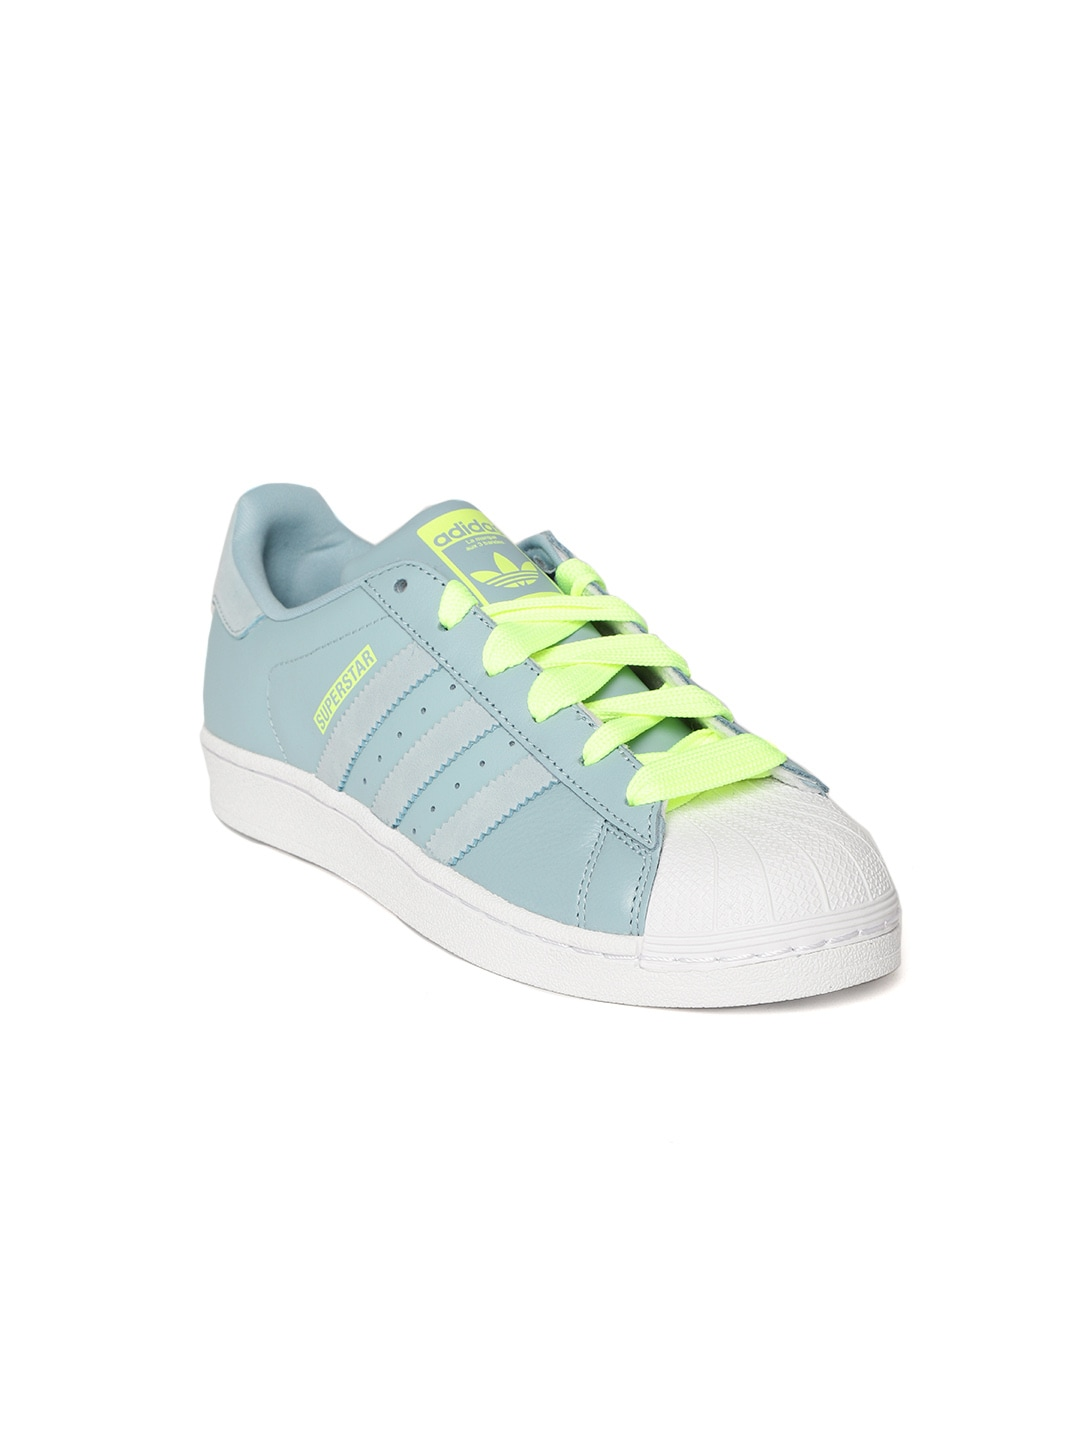 05071a651 Adidas Superstar Shoes - Buy Adidas Superstar Shoes Online - Myntra